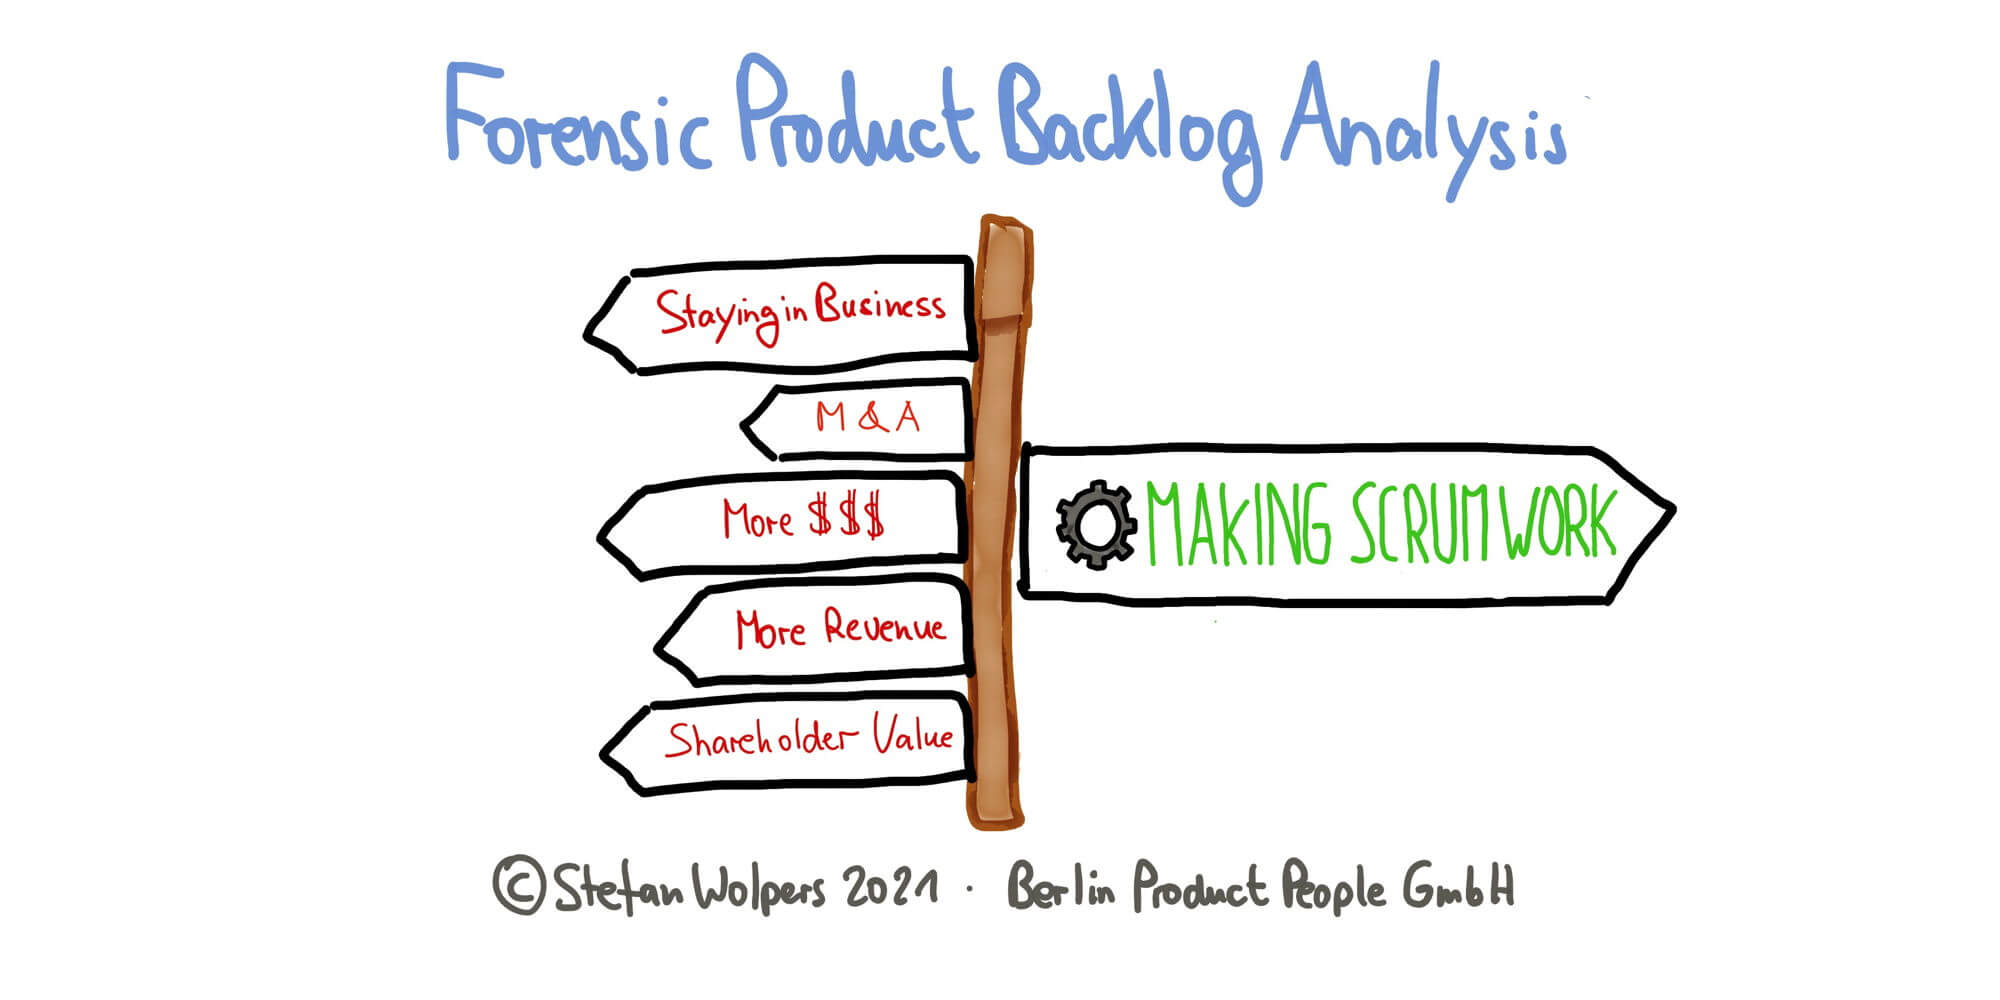 Forensic Product Backlog Analysis – Making Your Scrum Work